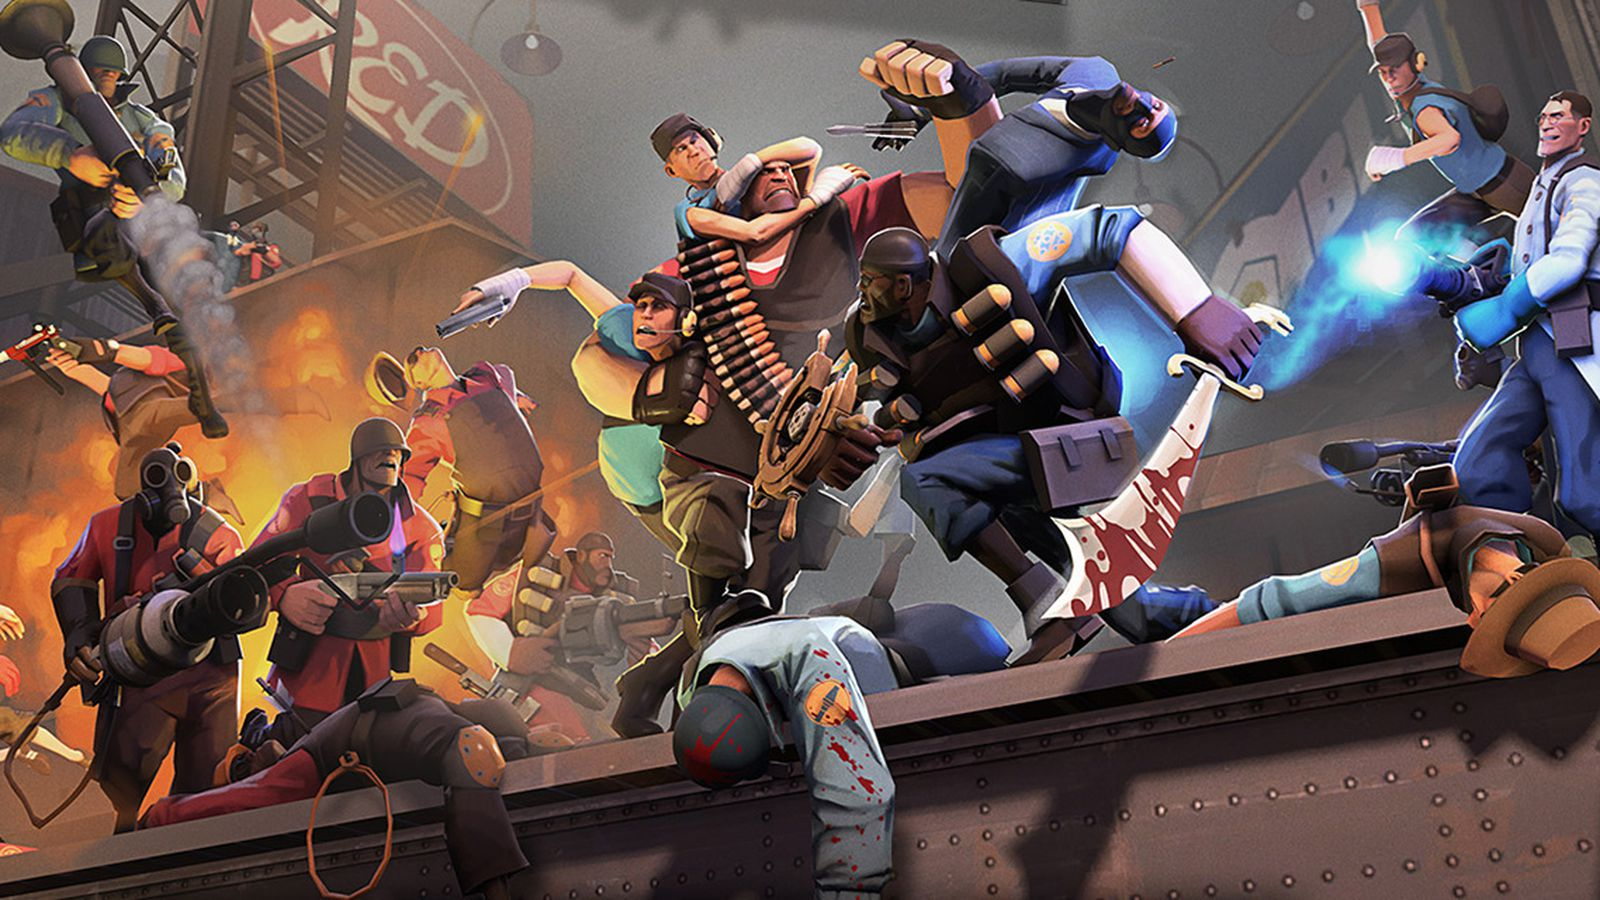 Team Fortress 2 update adding matchmaking, ranked play and more